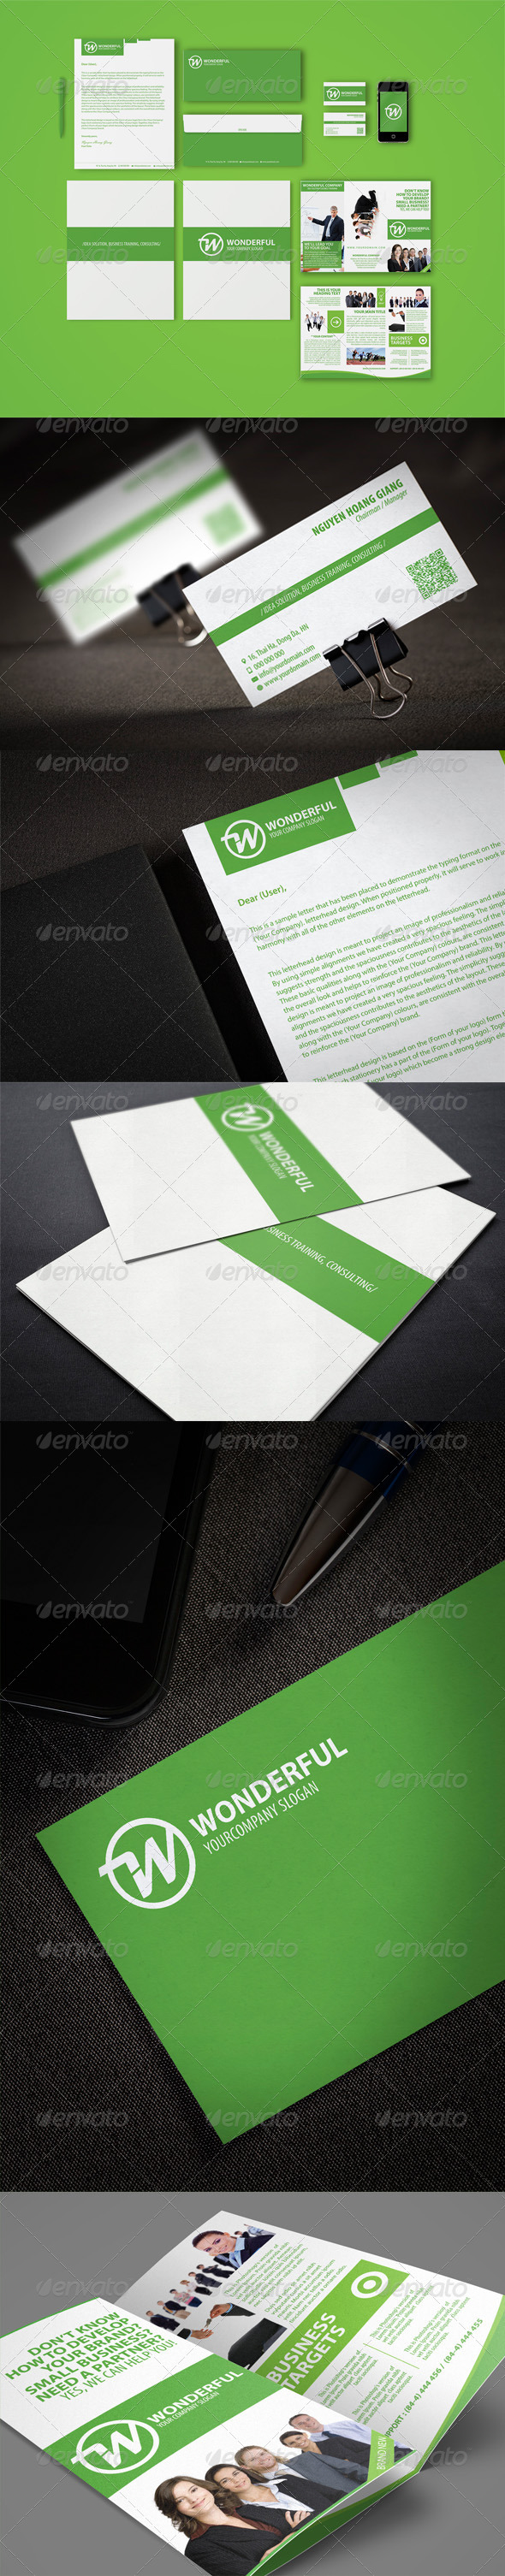 GraphicRiver Wonderful Green Branding Identity 4276763